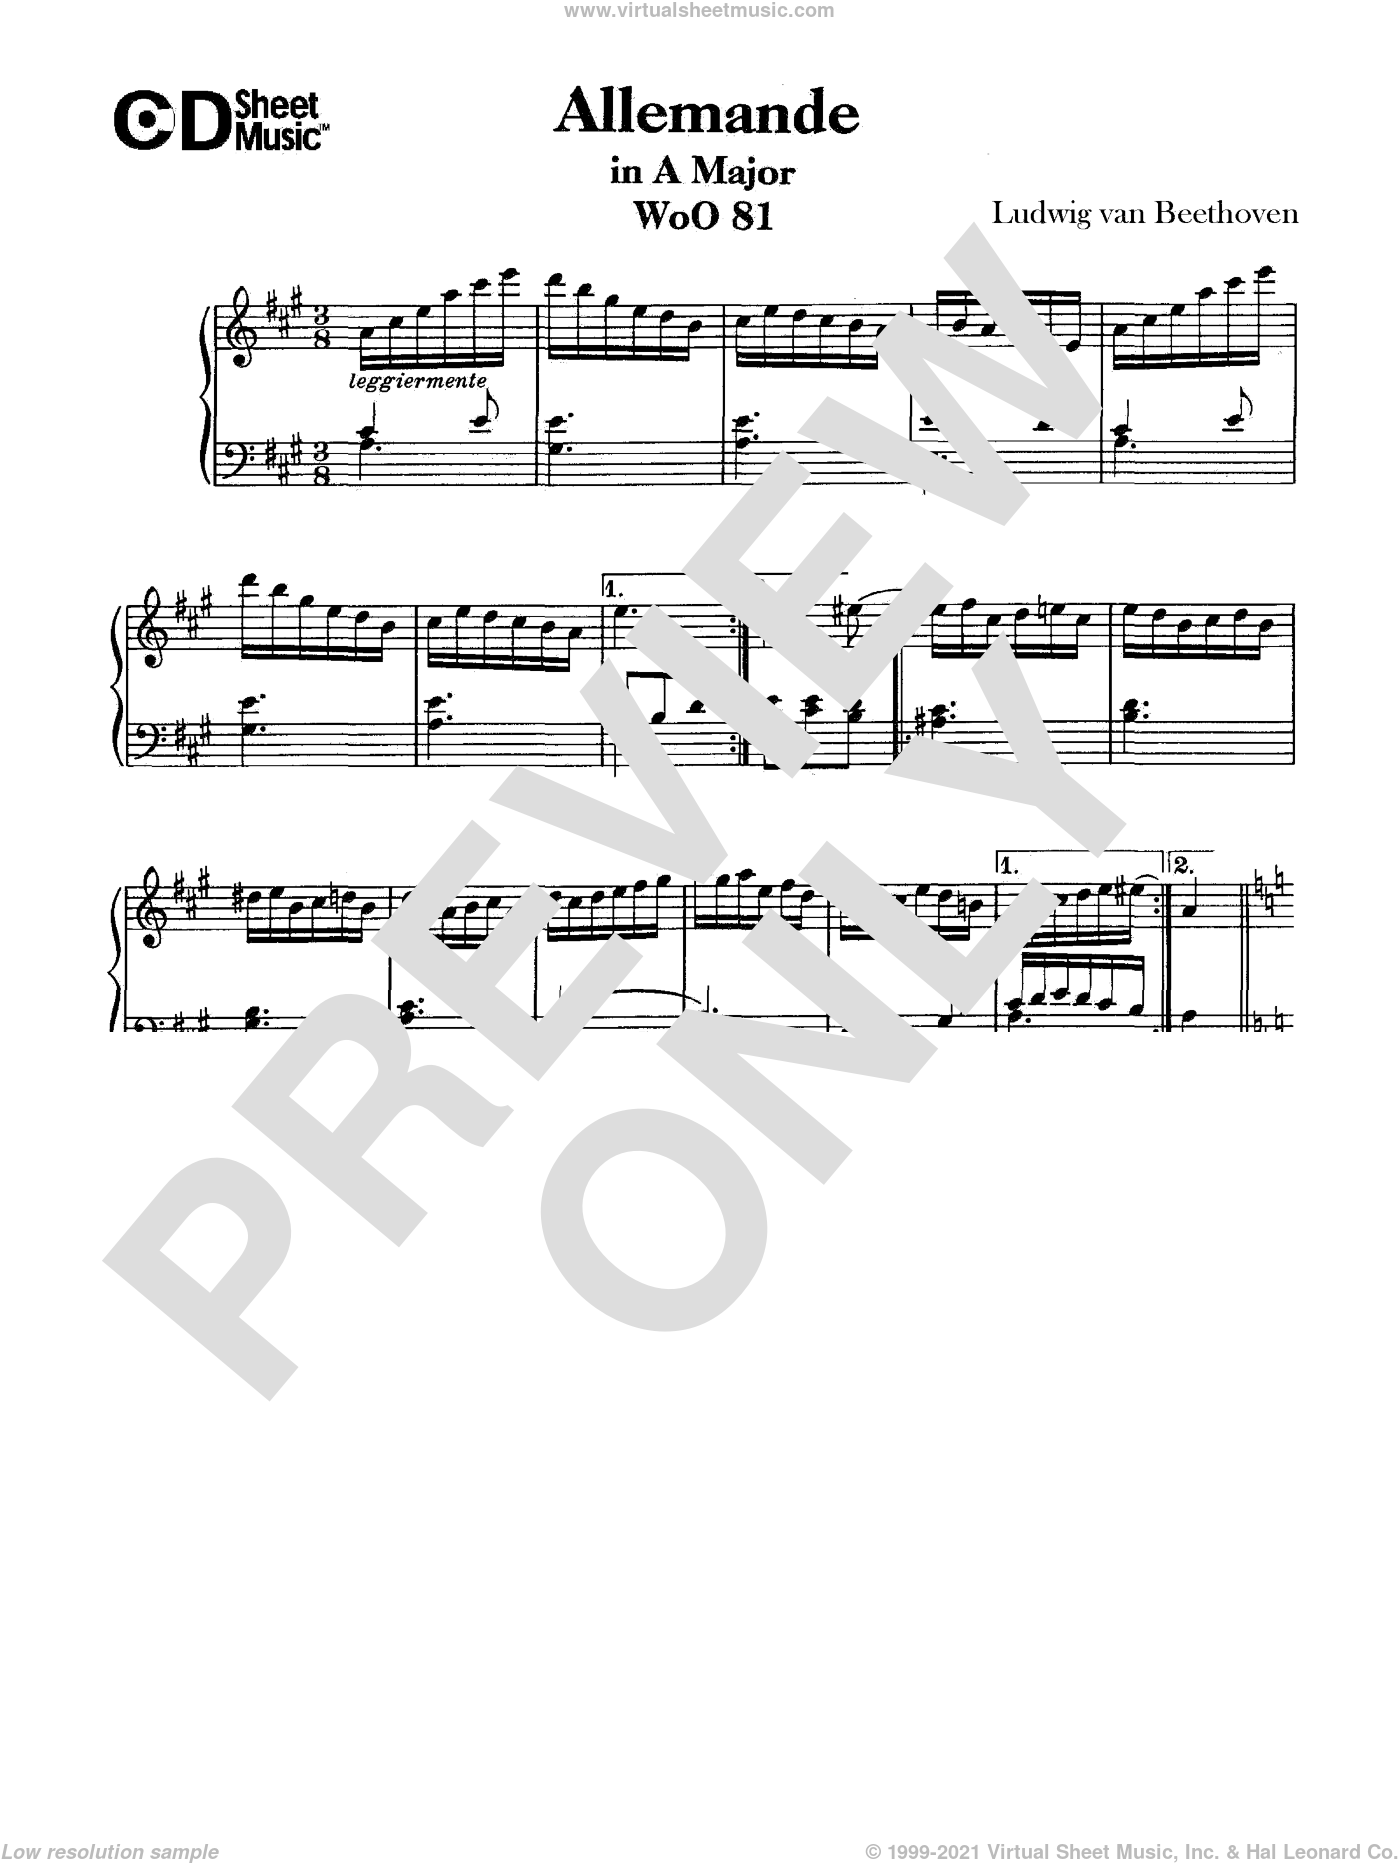 Allemande In A Major, Woo 81 sheet music for piano solo by Ludwig van Beethoven